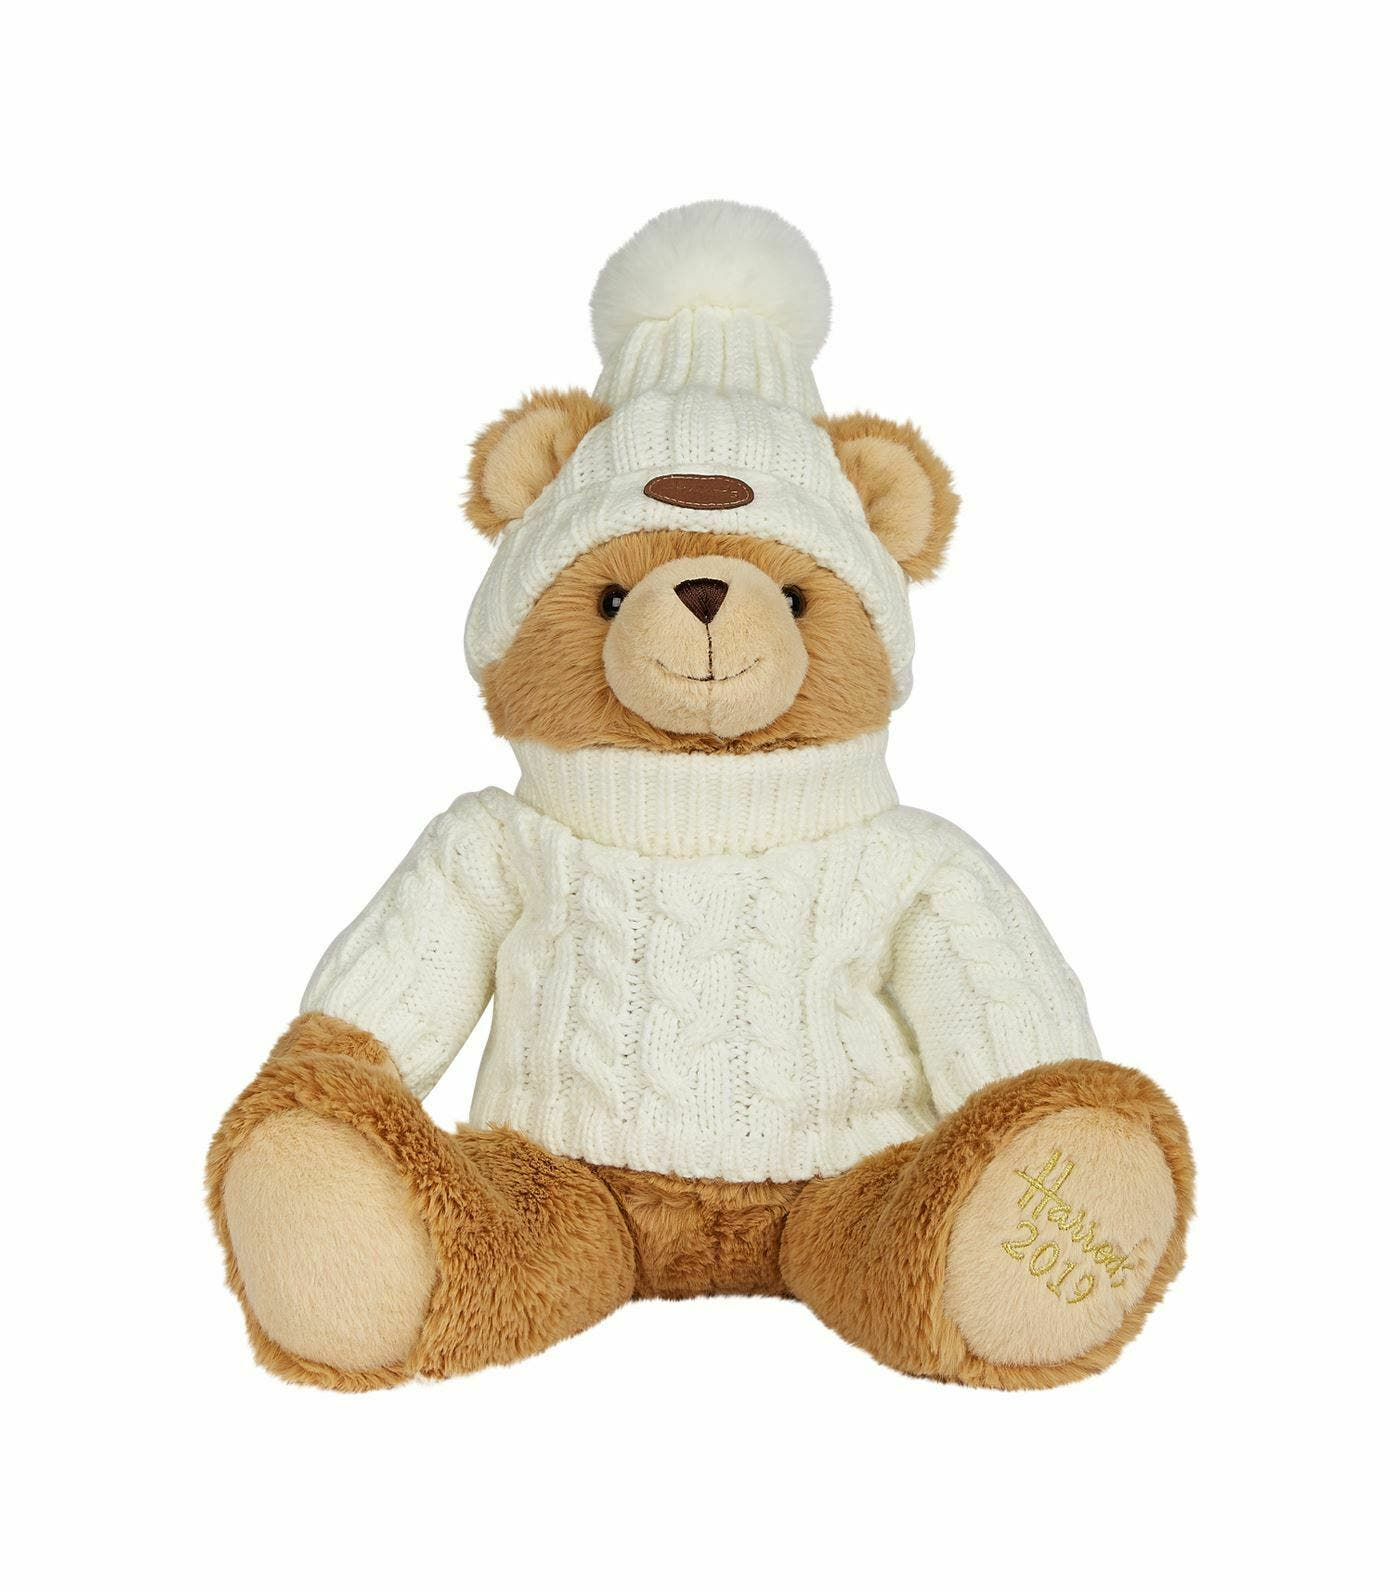 2019 HARRODS Annual Christmas Bear JOSHUA Bear 42cm